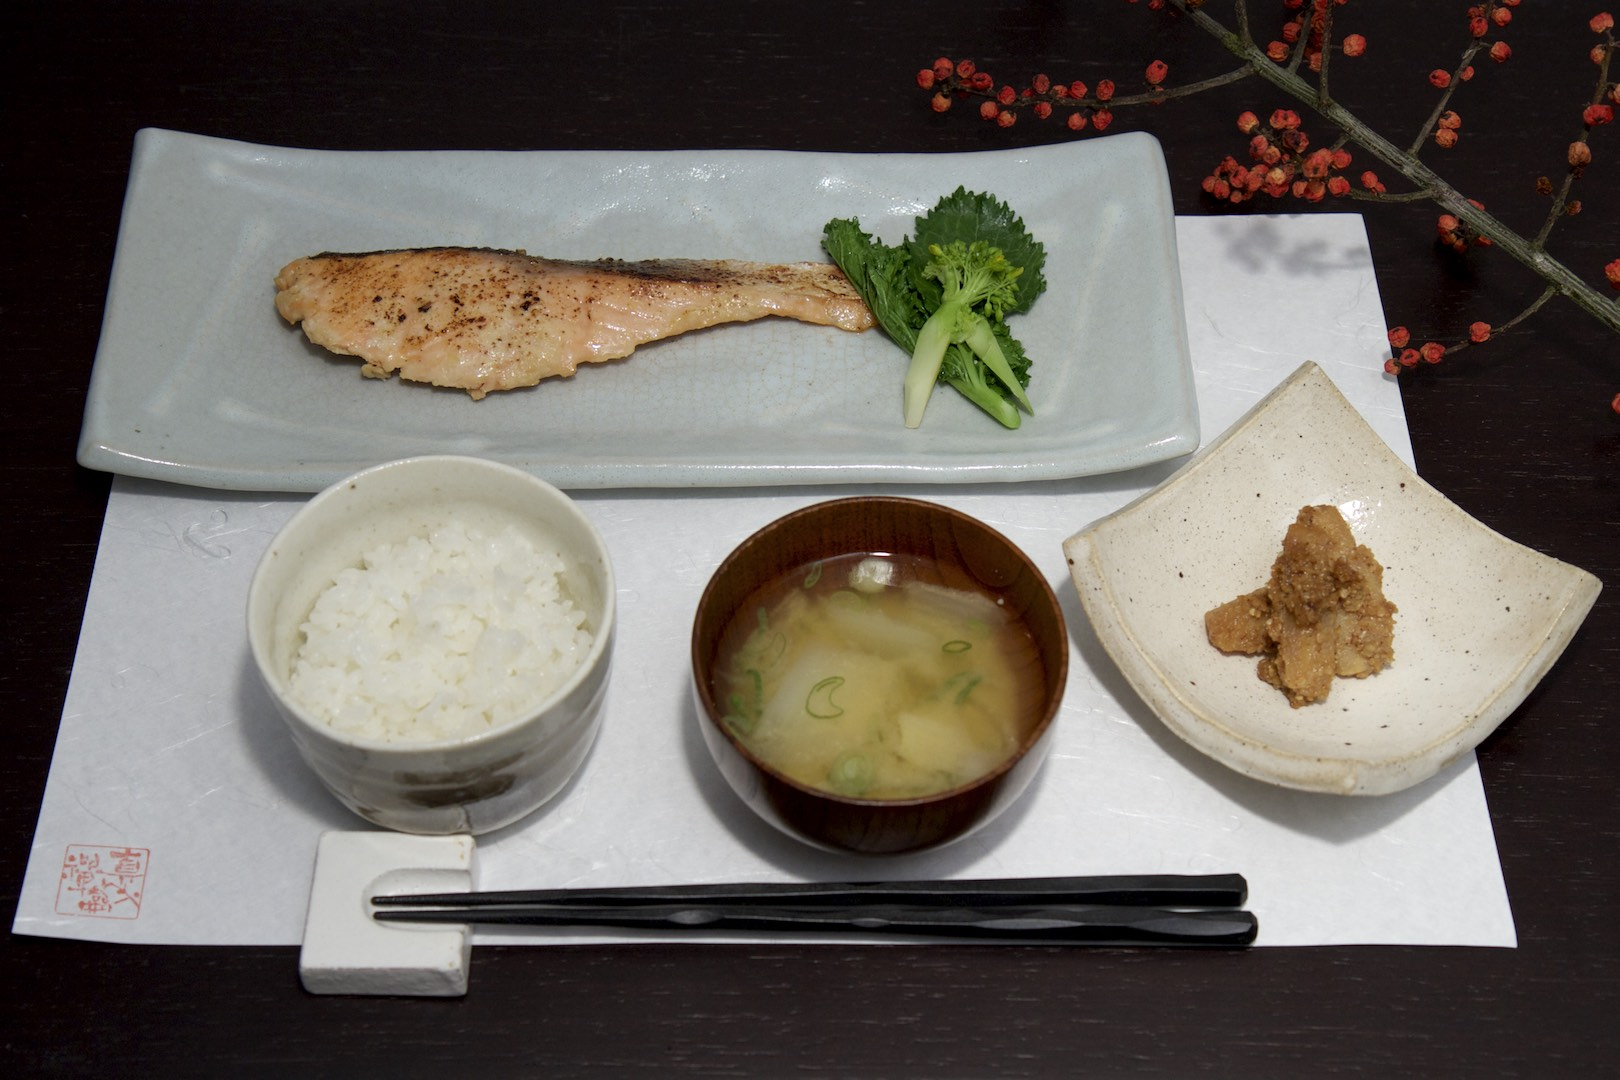 Lunch set – three days in homemade miso marinated, grilled organic Irish salmon; parsley root with sesame sauce, homemade miso soup from Swiss organic soy beans, organic Gokase rice